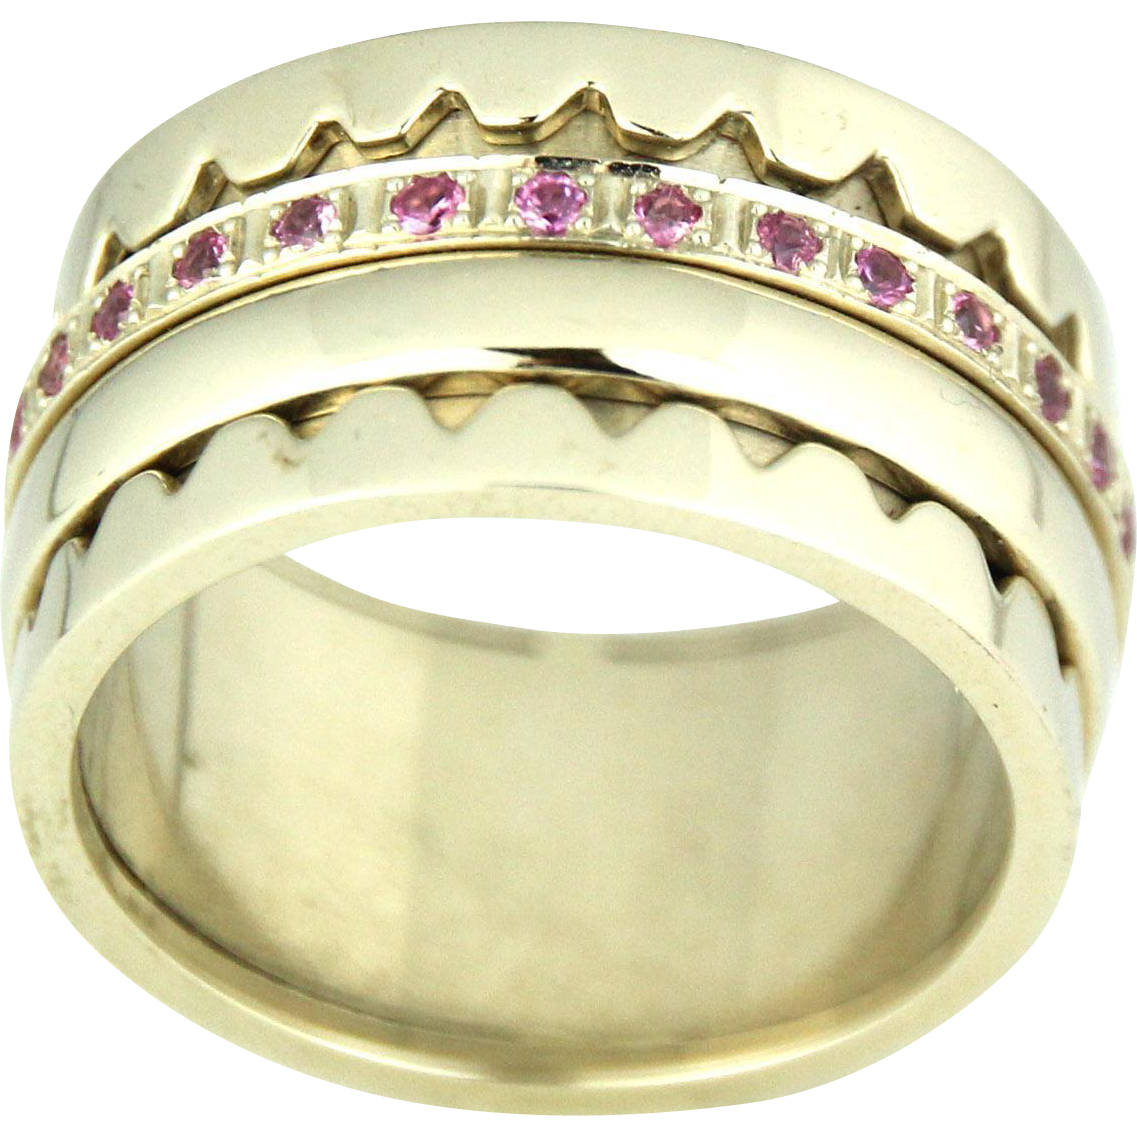 New 14k White Gold Pink Sapphire Swivel Band